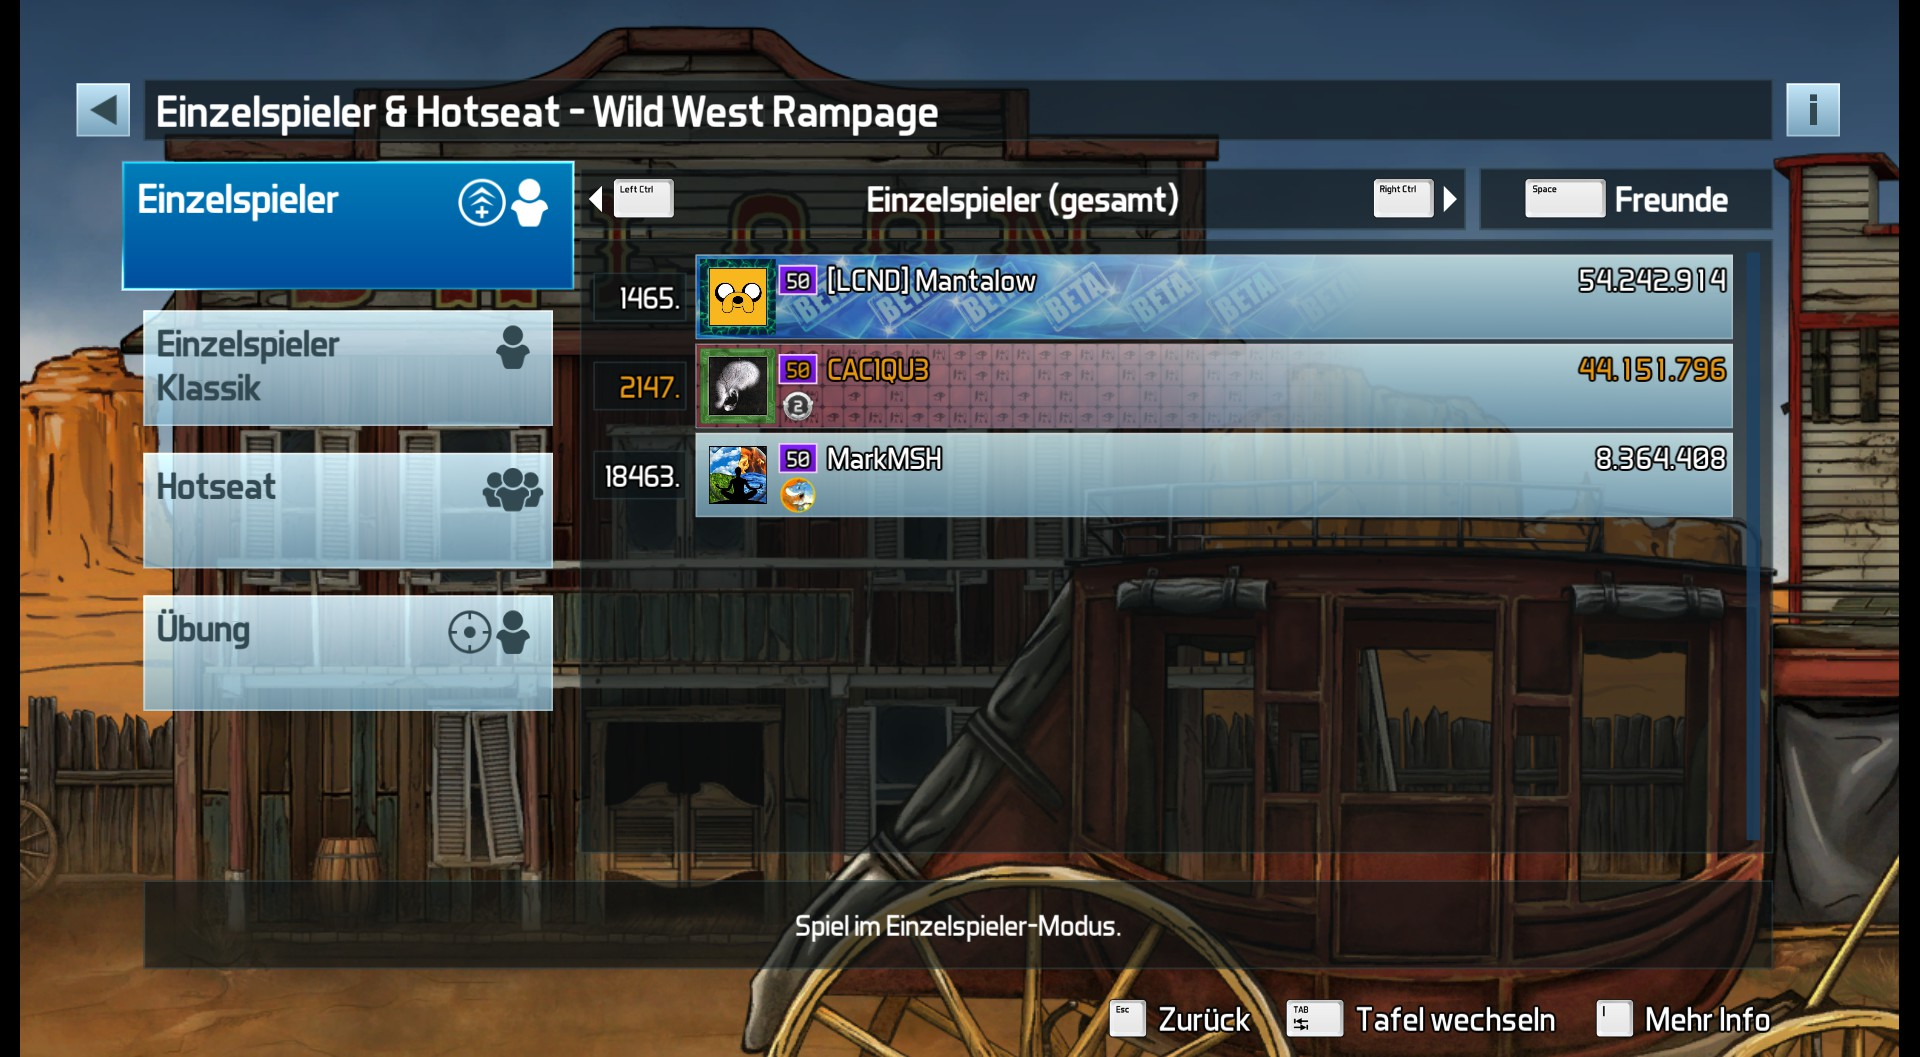 CAC1QU3: Pinball FX3: Wild West Rampage (PC) 44,151,796 points on 2019-04-26 00:24:48